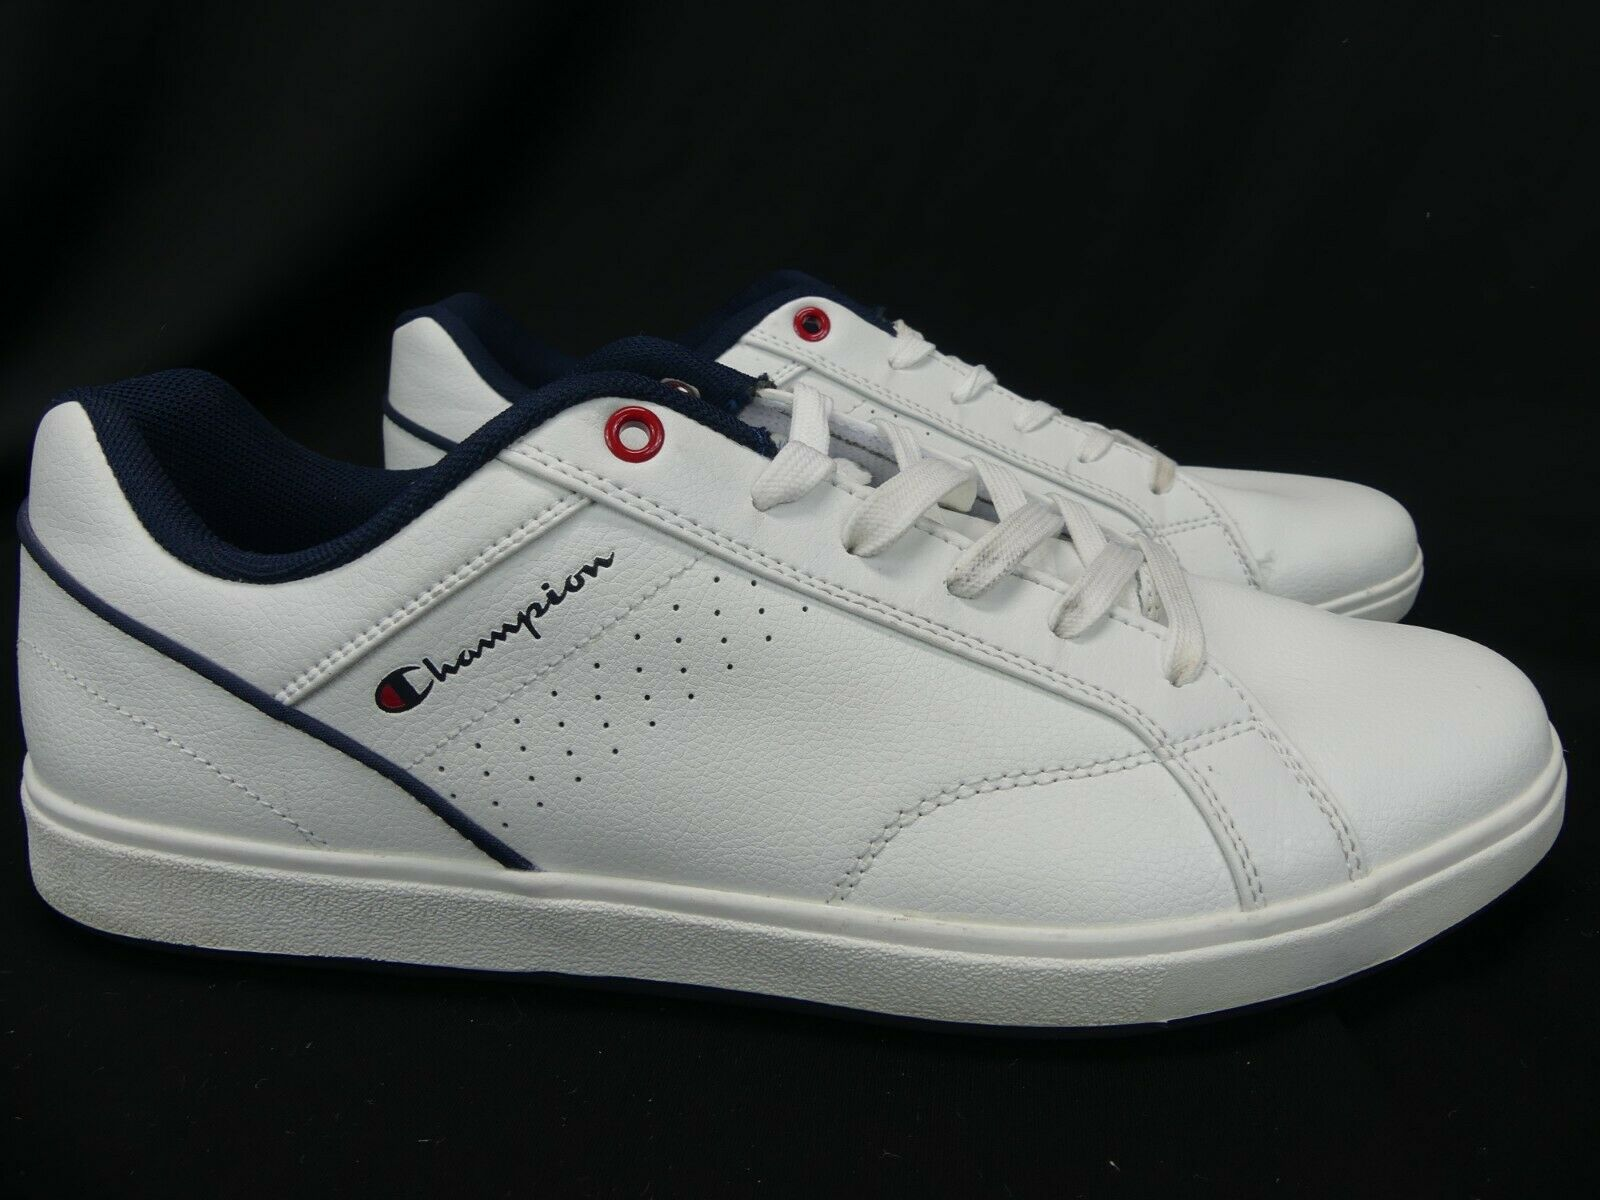 9fd2fd341c7ed NOS - Champion Ace Court White Leather Tennis shoes 11.5 Man Made Upper  168007